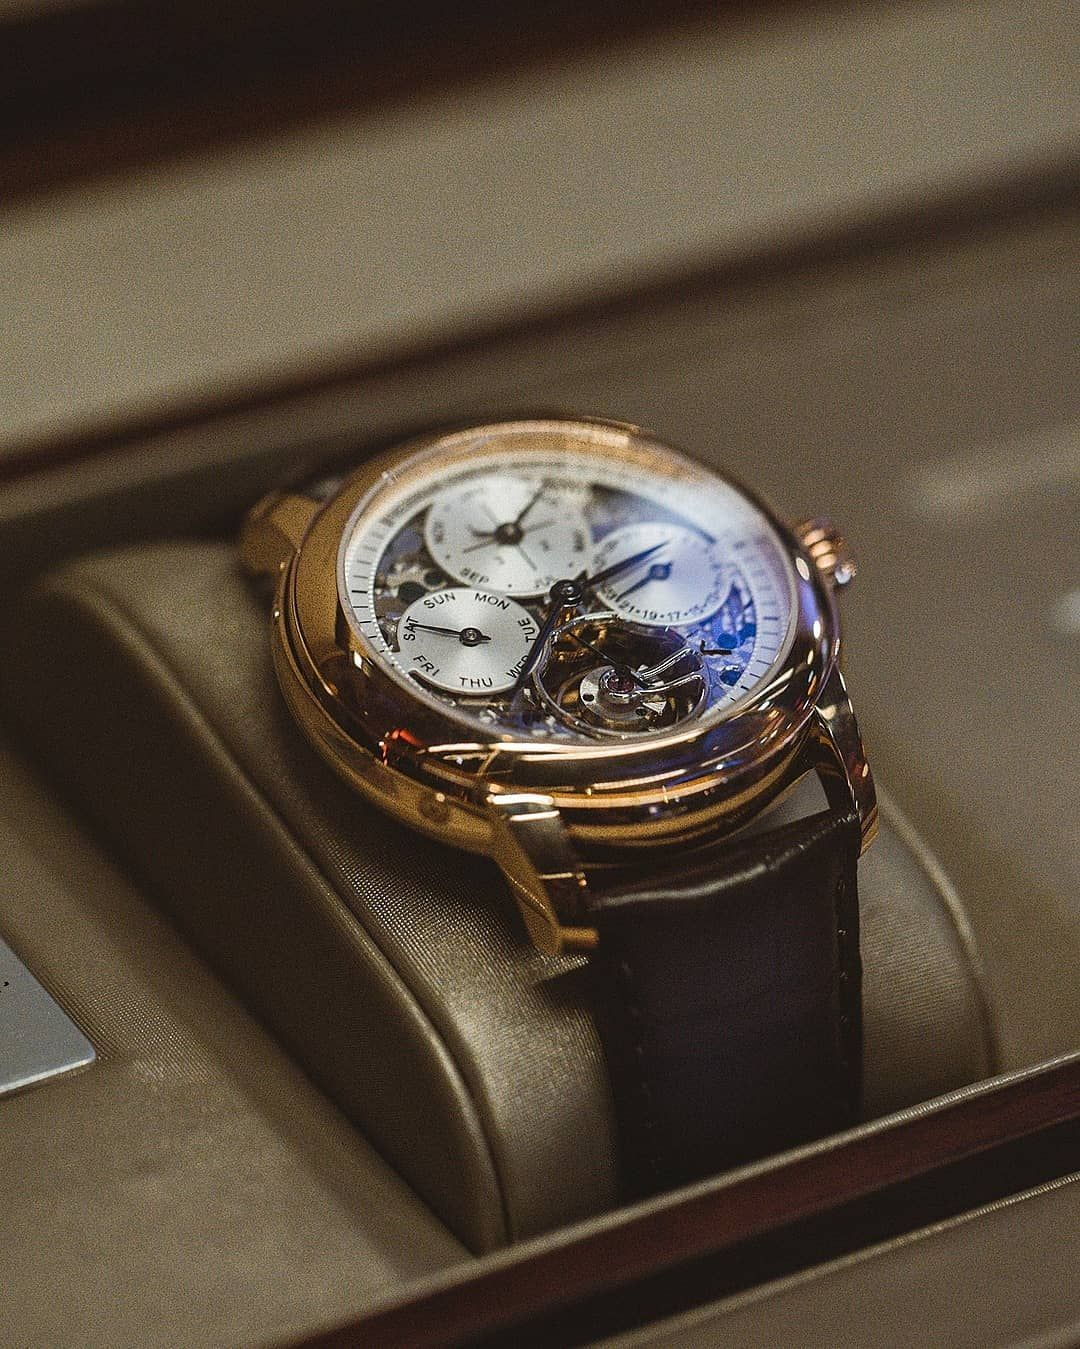 Frederique Constant On Instagram Close Up On Frederiqueconstant S Latest Novelty The Incredible Rose Mens Fashion Watches Timeless Watches Watches For Men